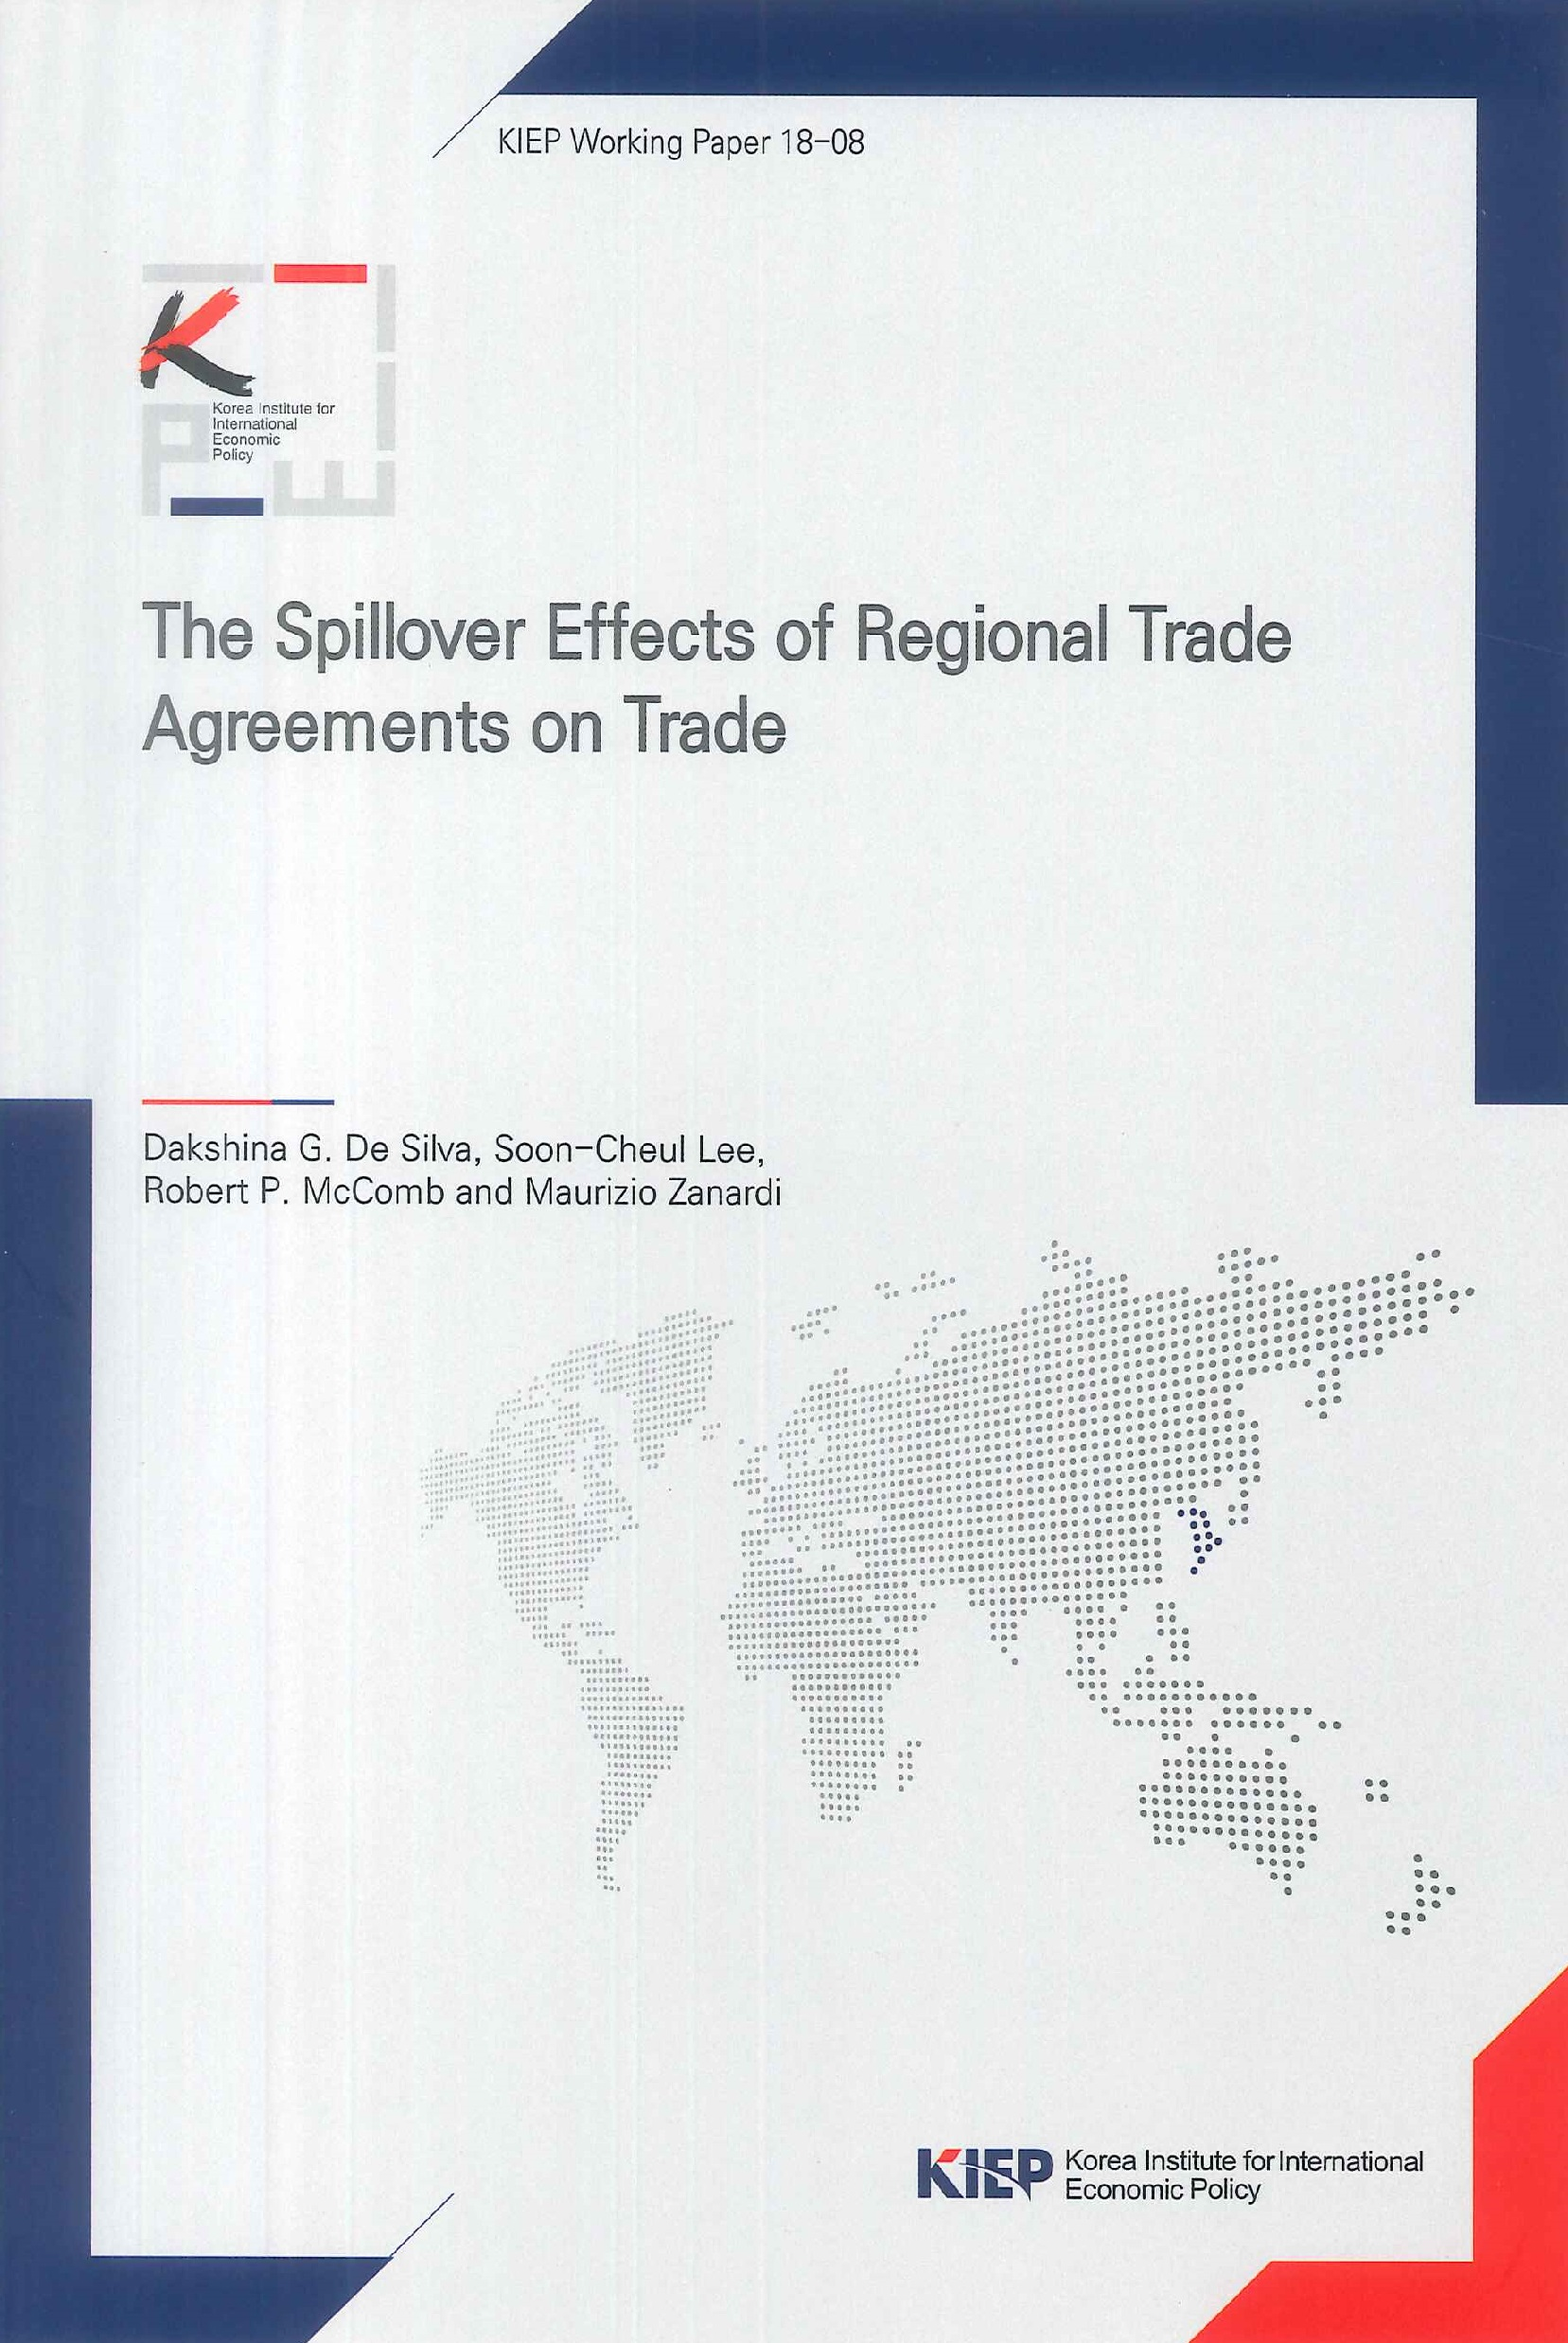 The spillover effects of regional trade agreements on trade